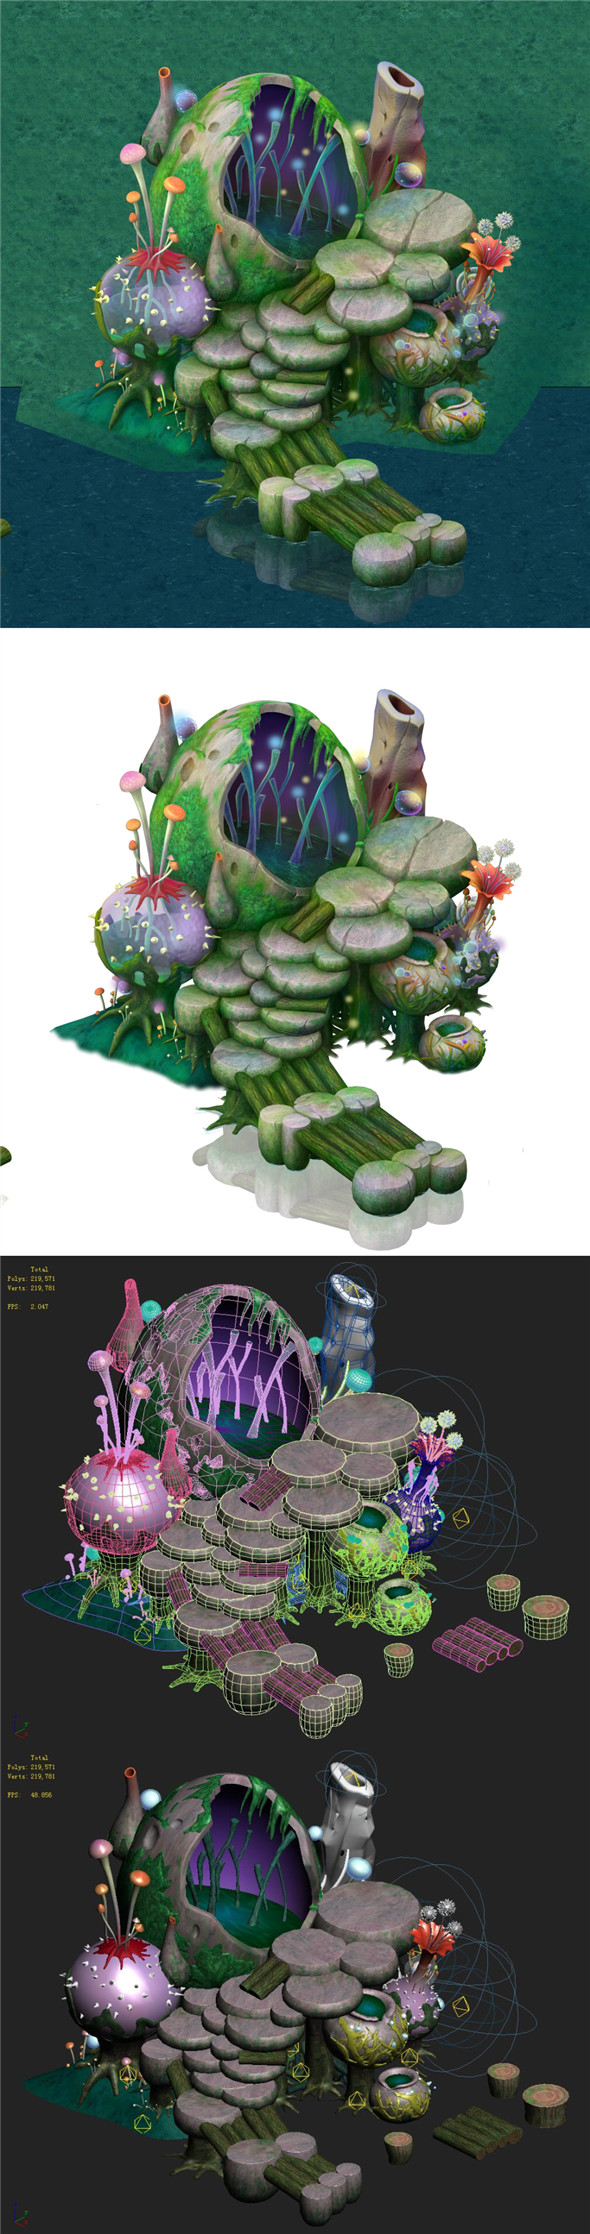 Cartoon version - spore purgatory - 3DOcean Item for Sale